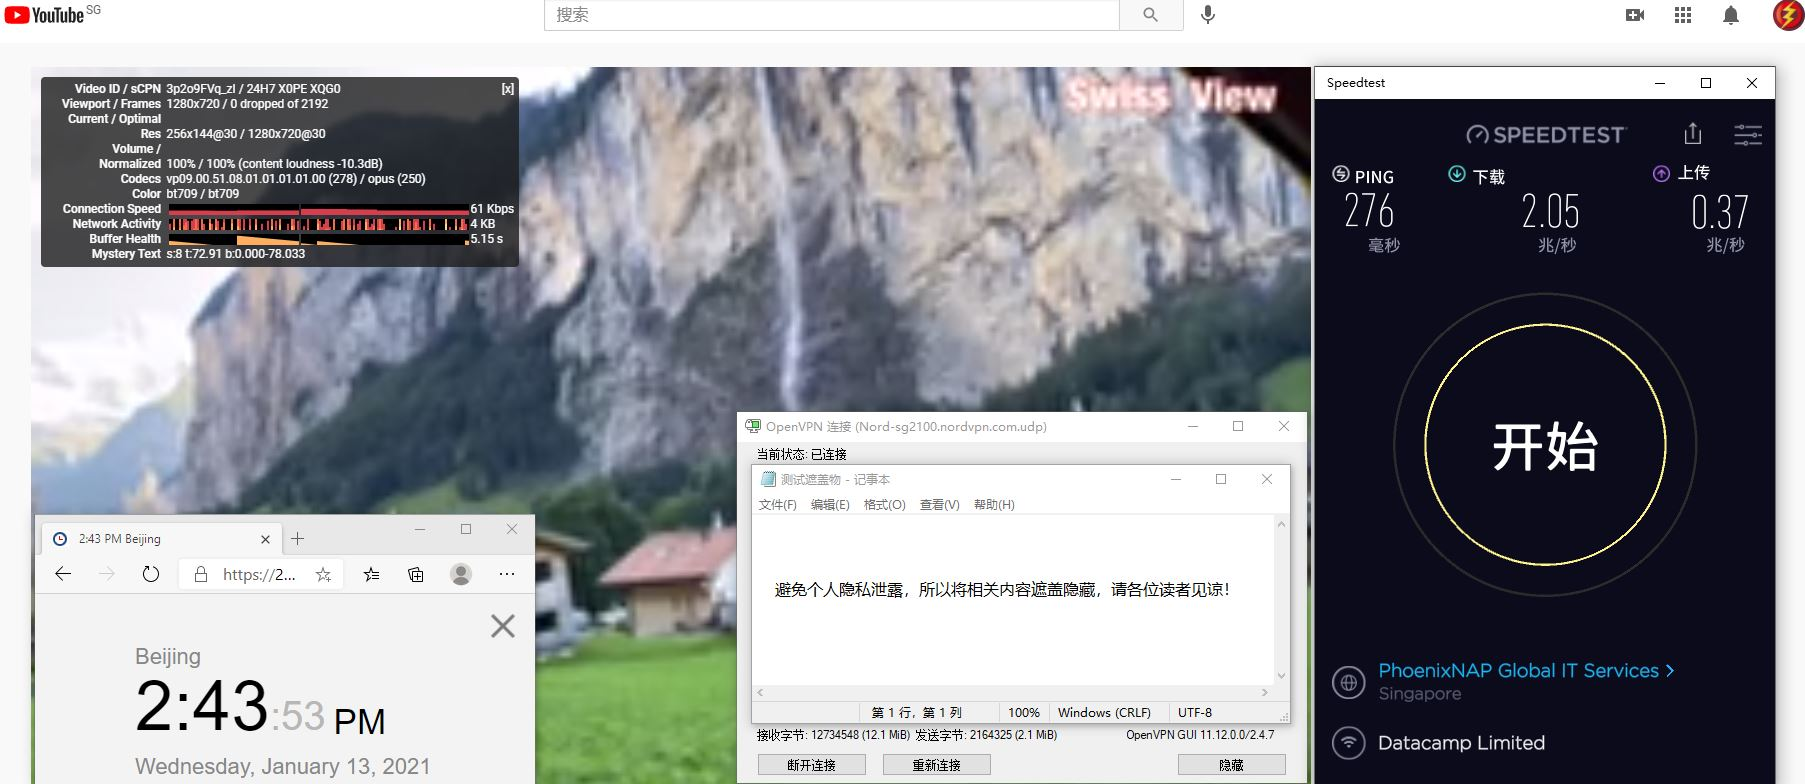 Windows10 NordVPN Open VPN GUI SG2100 服务器 中国VPN 翻墙 科学上网 10BEASTS BARRY测试 - 20210113